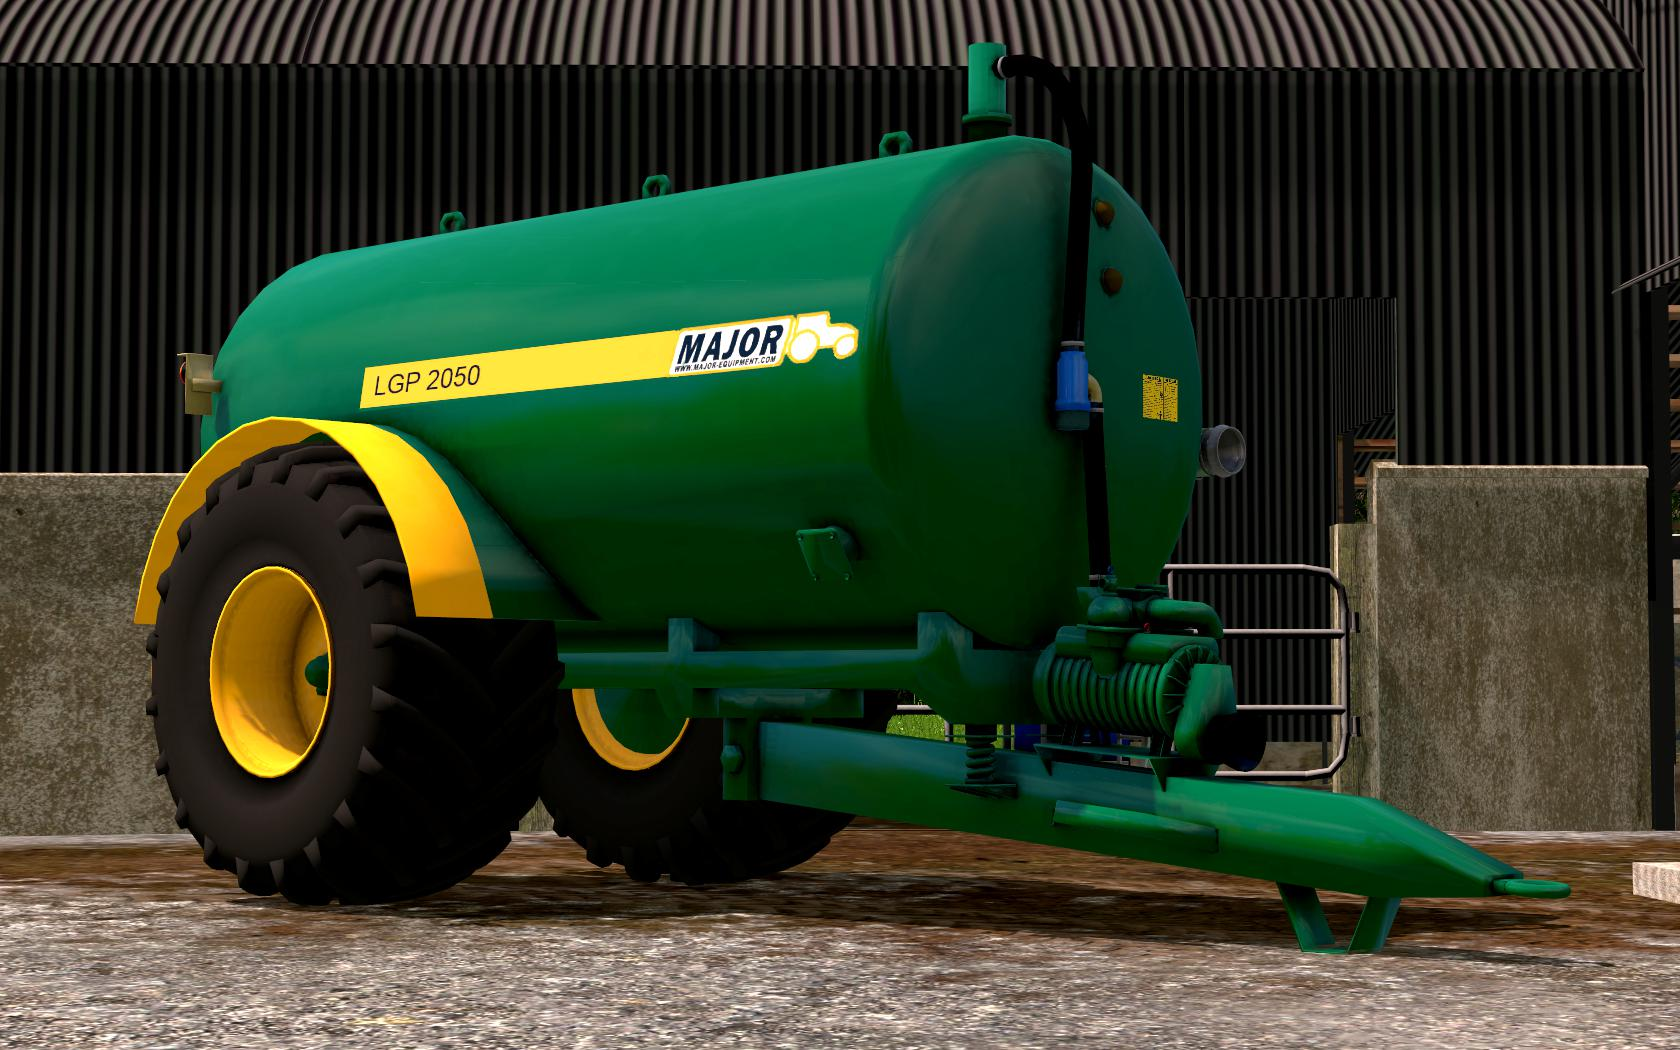 Major slurry tanker v 1.0